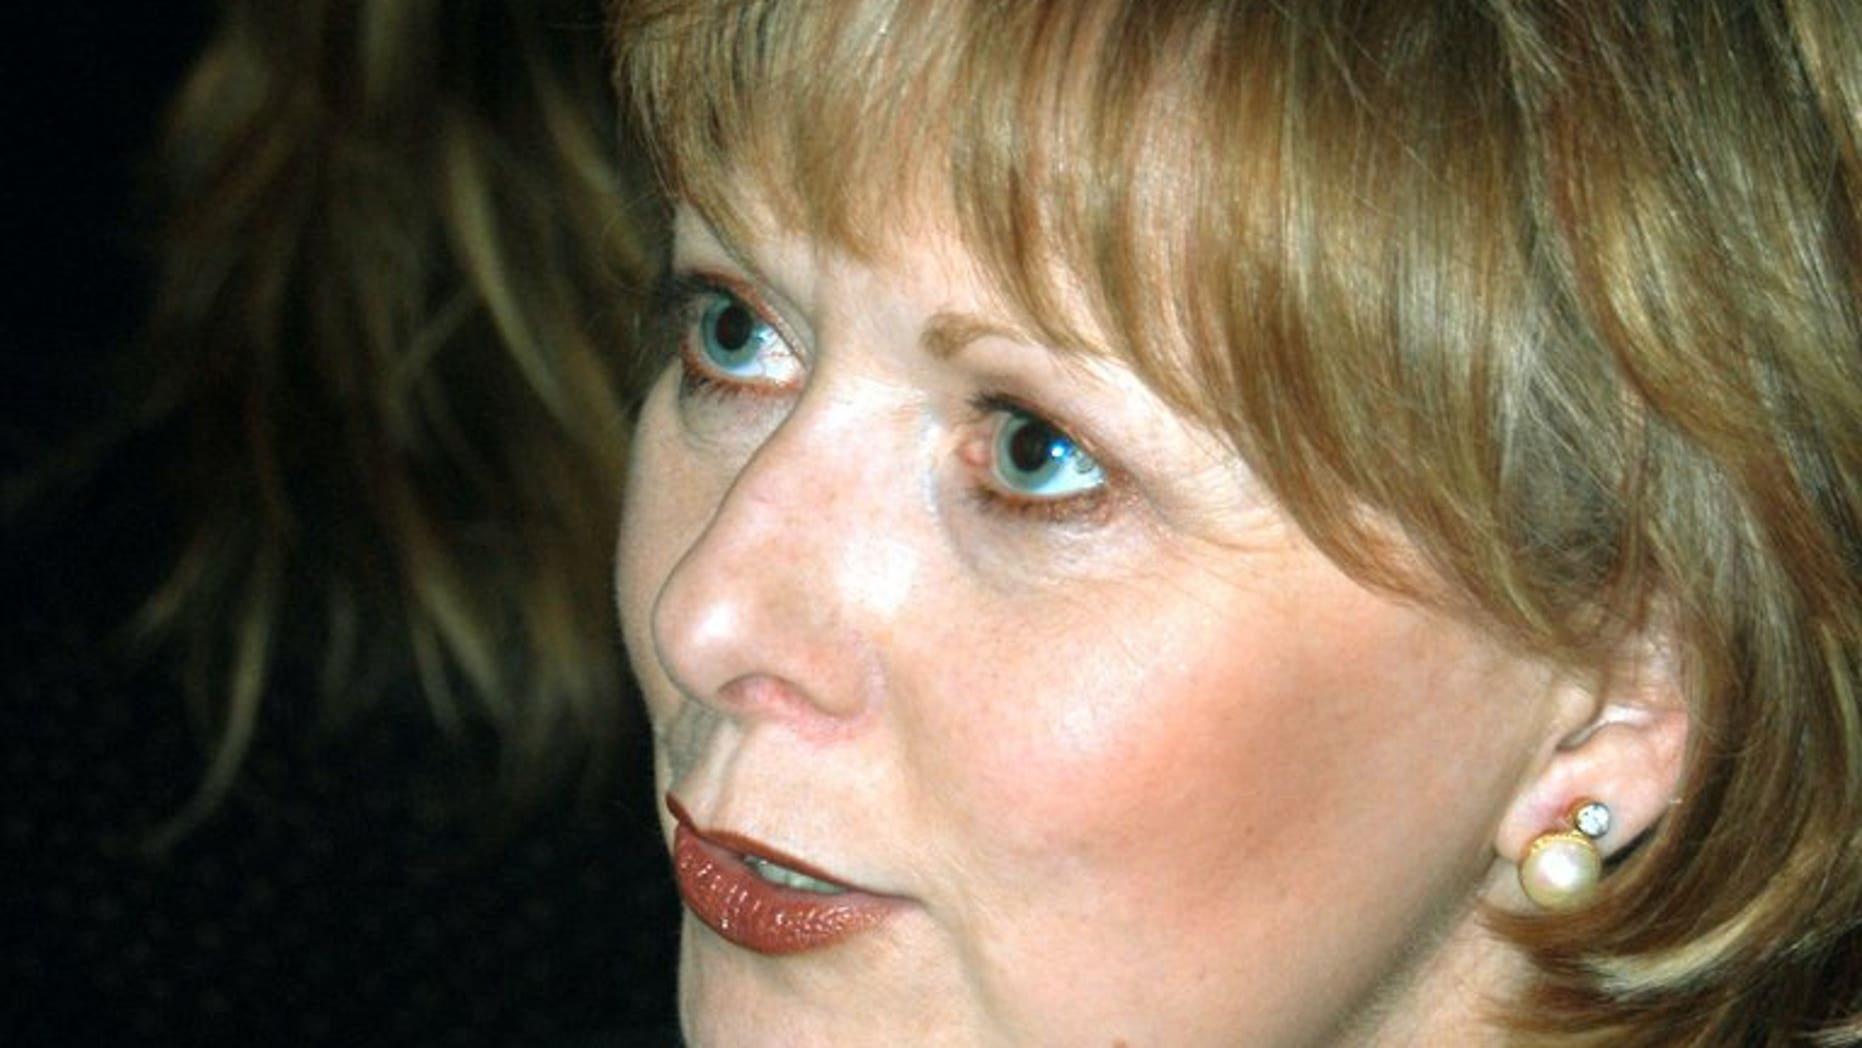 """Pamela Wallin in New York City on March 4, 2004. Canada's Senate on Tuesday asked federal police to investigate Wallin after an audit uncovered some """"troubling"""" travel expense claims, amid growing calls to abolish the upper chamber."""